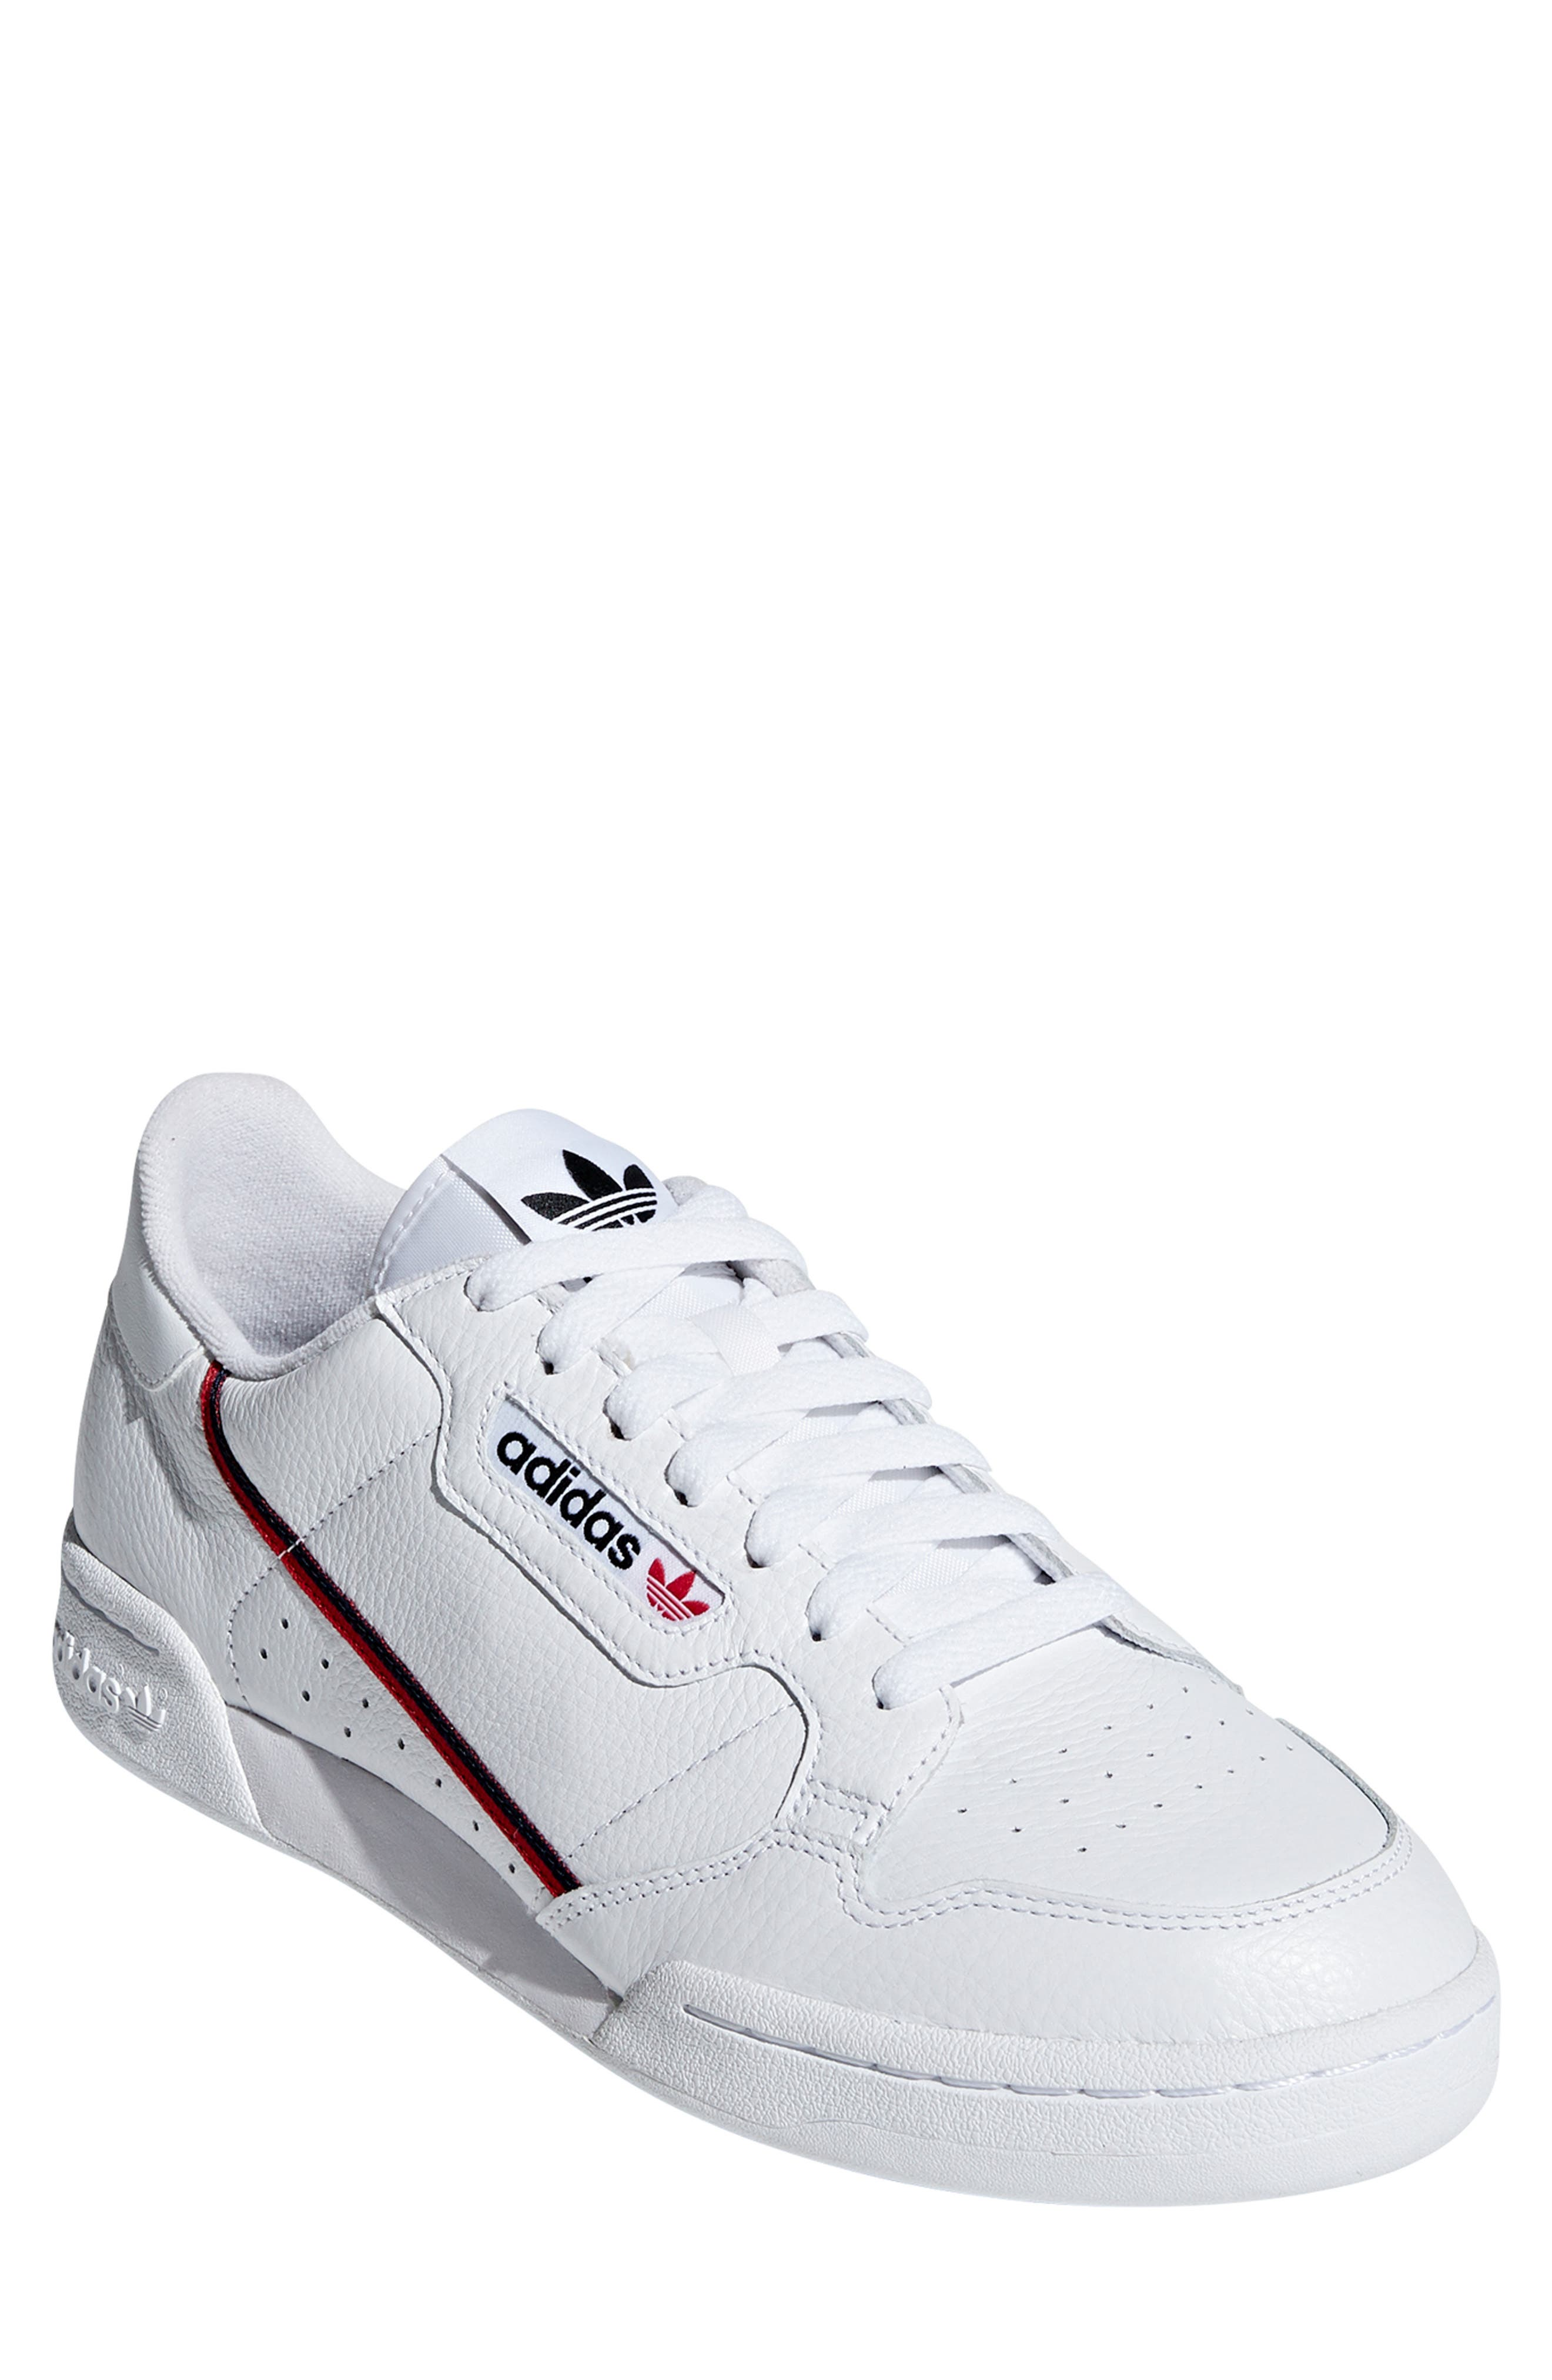 Continental 80 Sneaker, Main, color, WHITE/ SCARLET